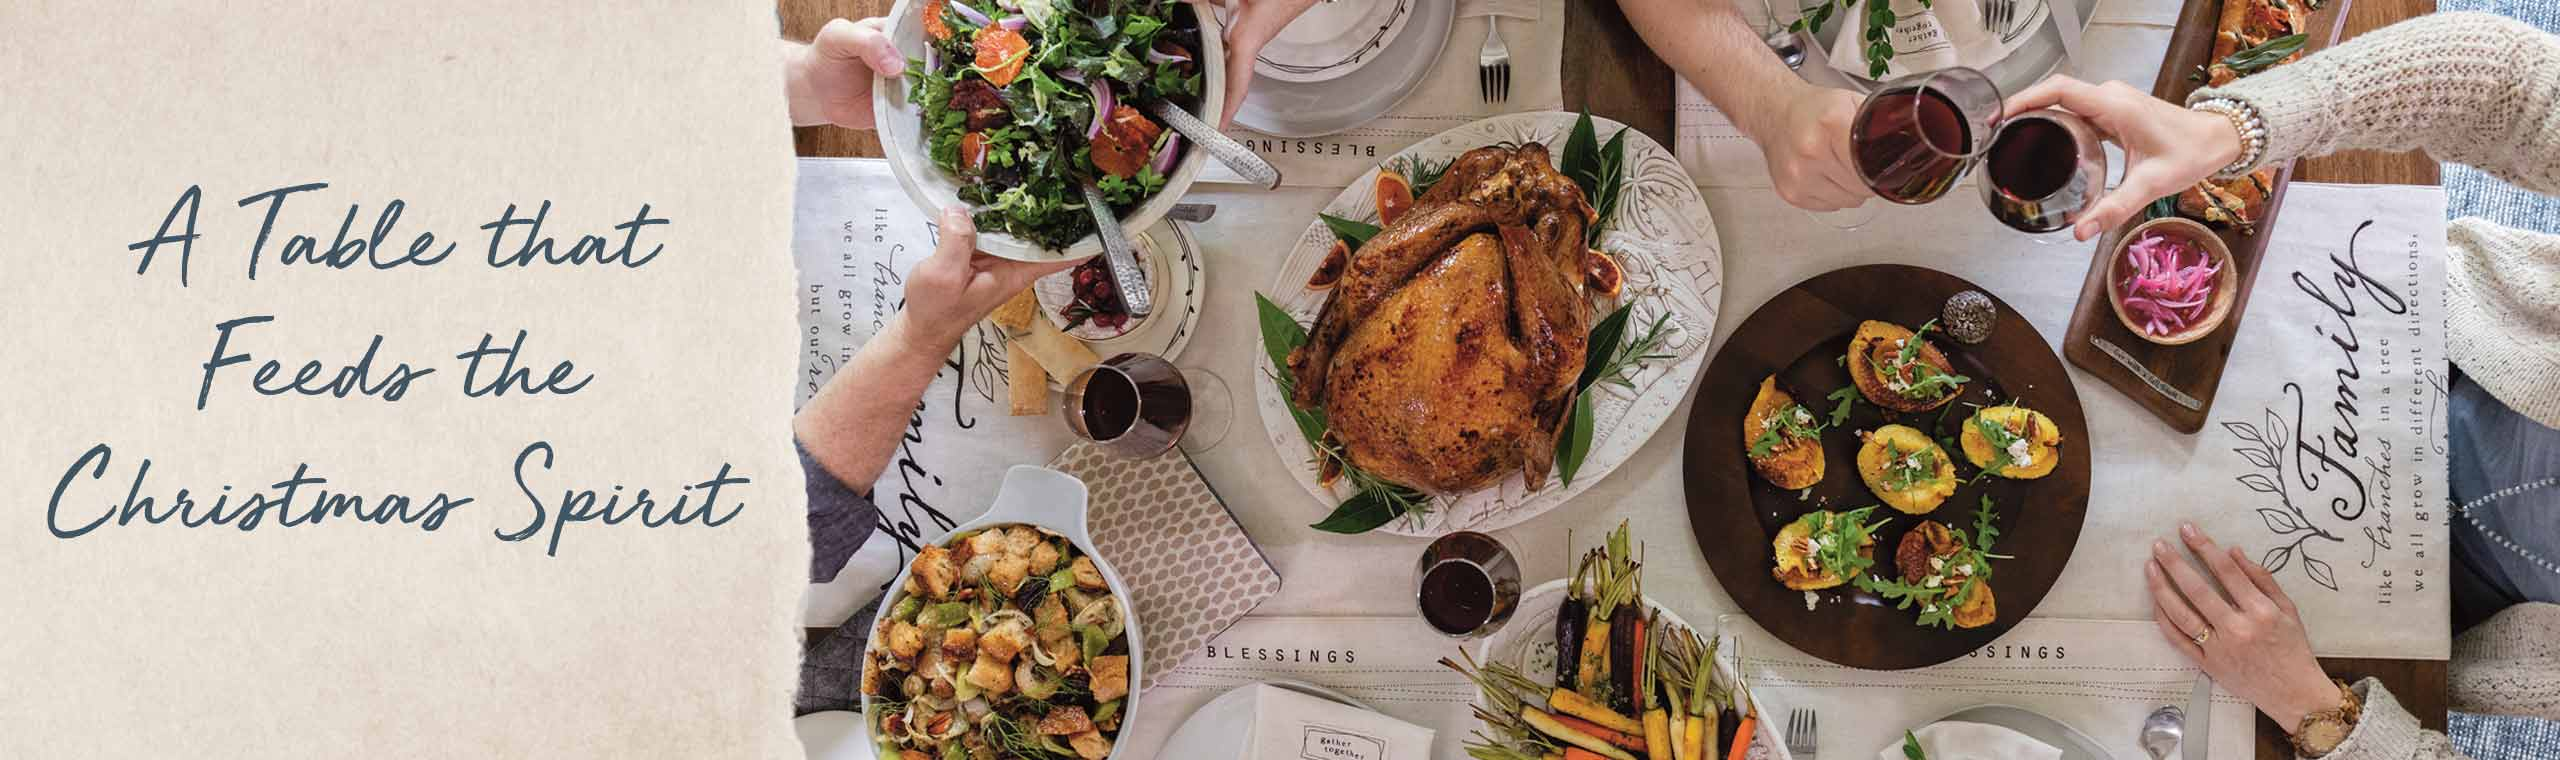 A table that feeds the Christmas Spirit. Family gathering around the table